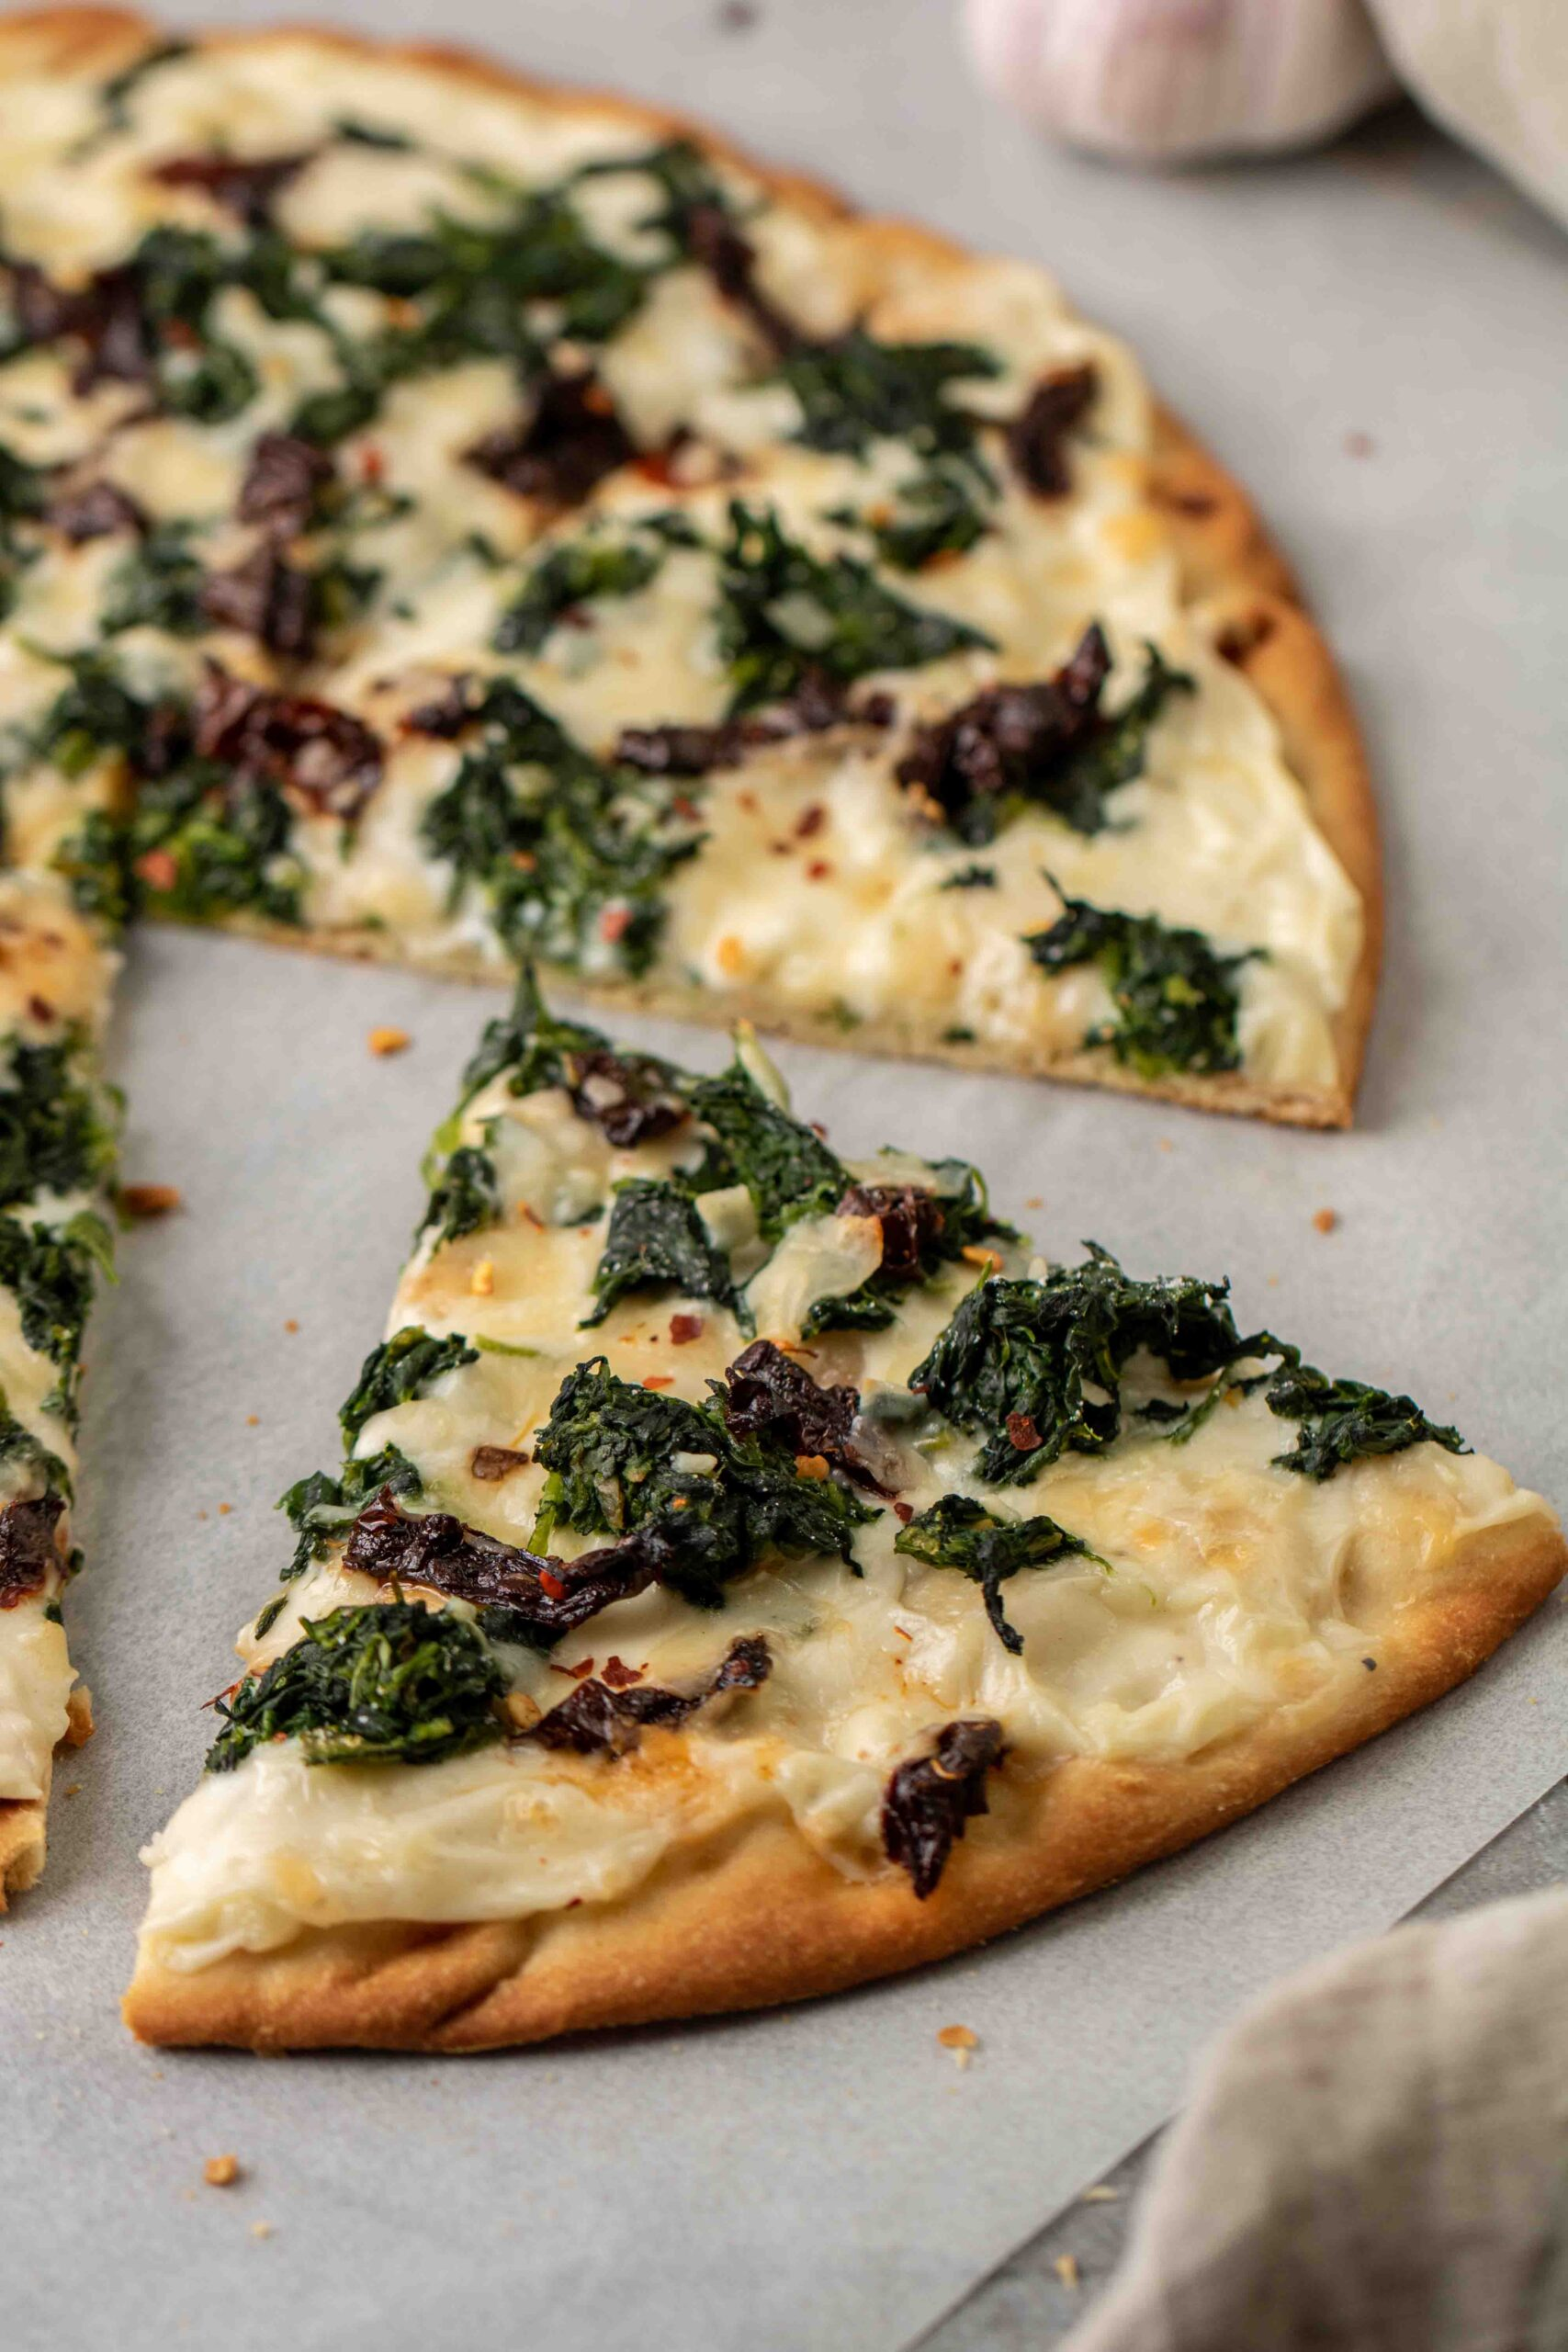 Slice of spinach pizza with white sauce